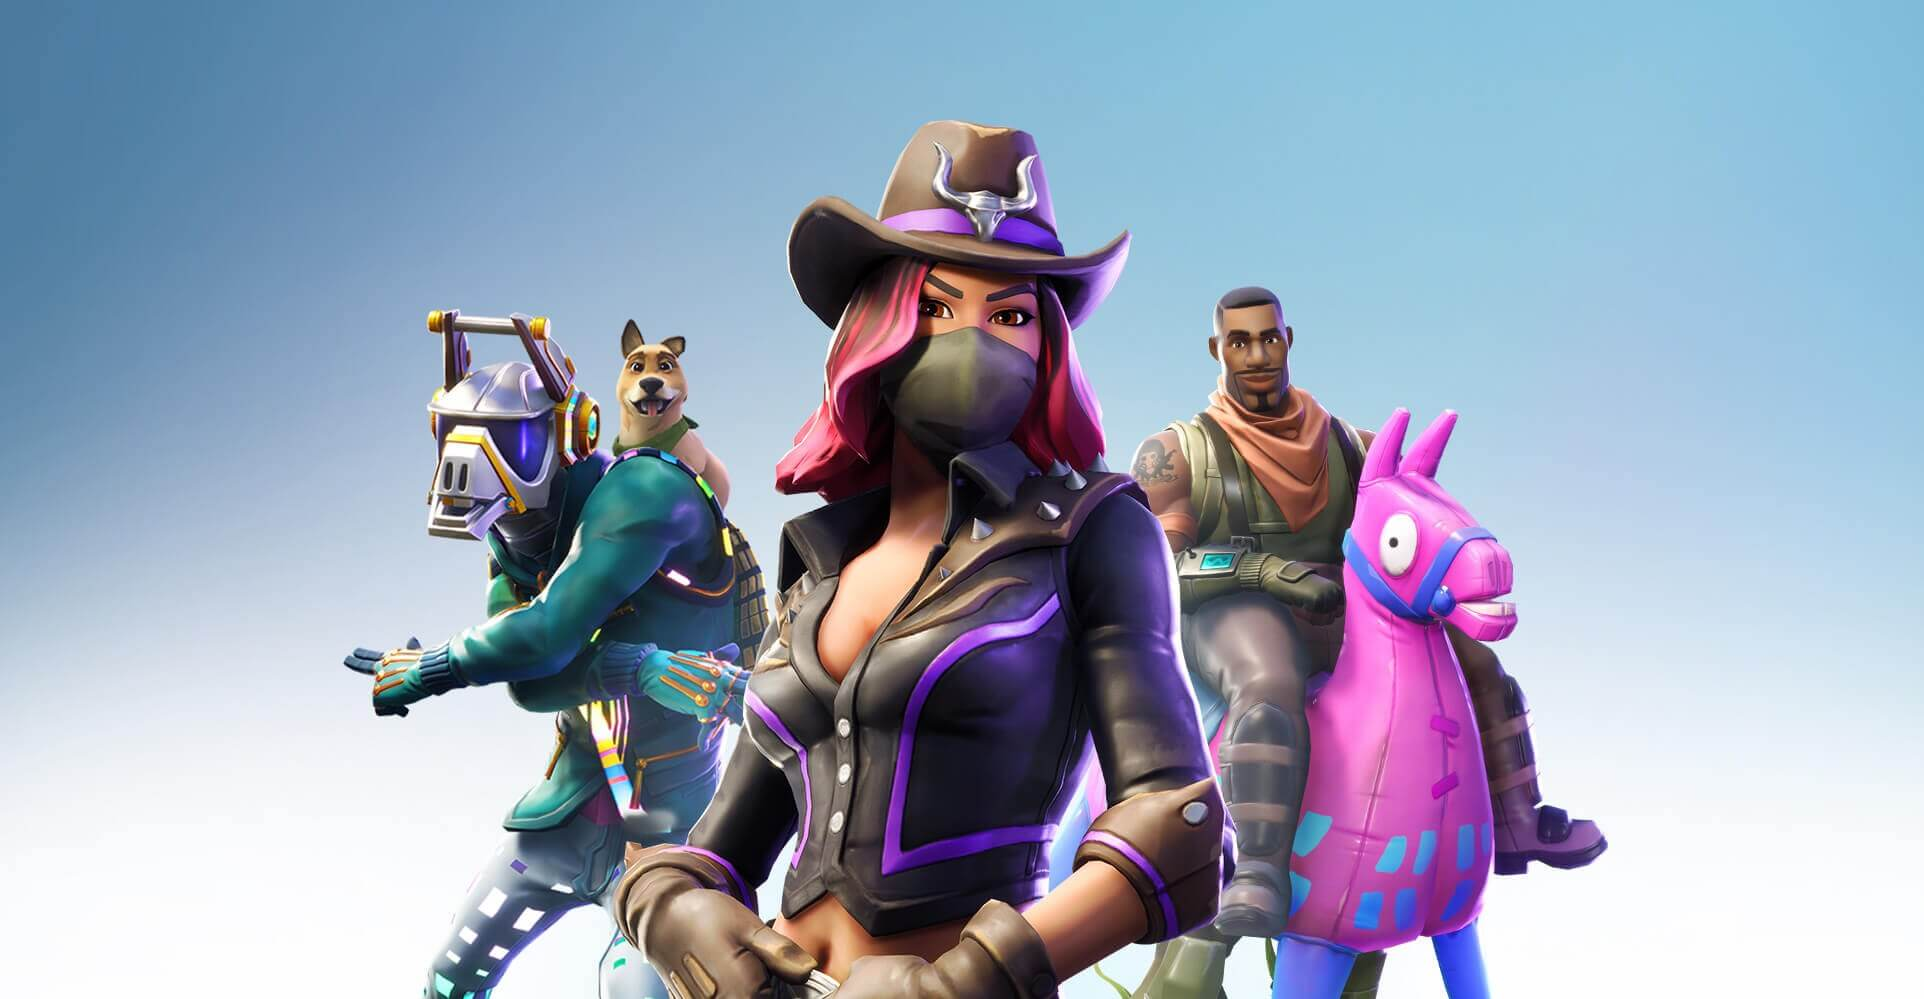 Fortnitemares 2018 Start and End Date Announced